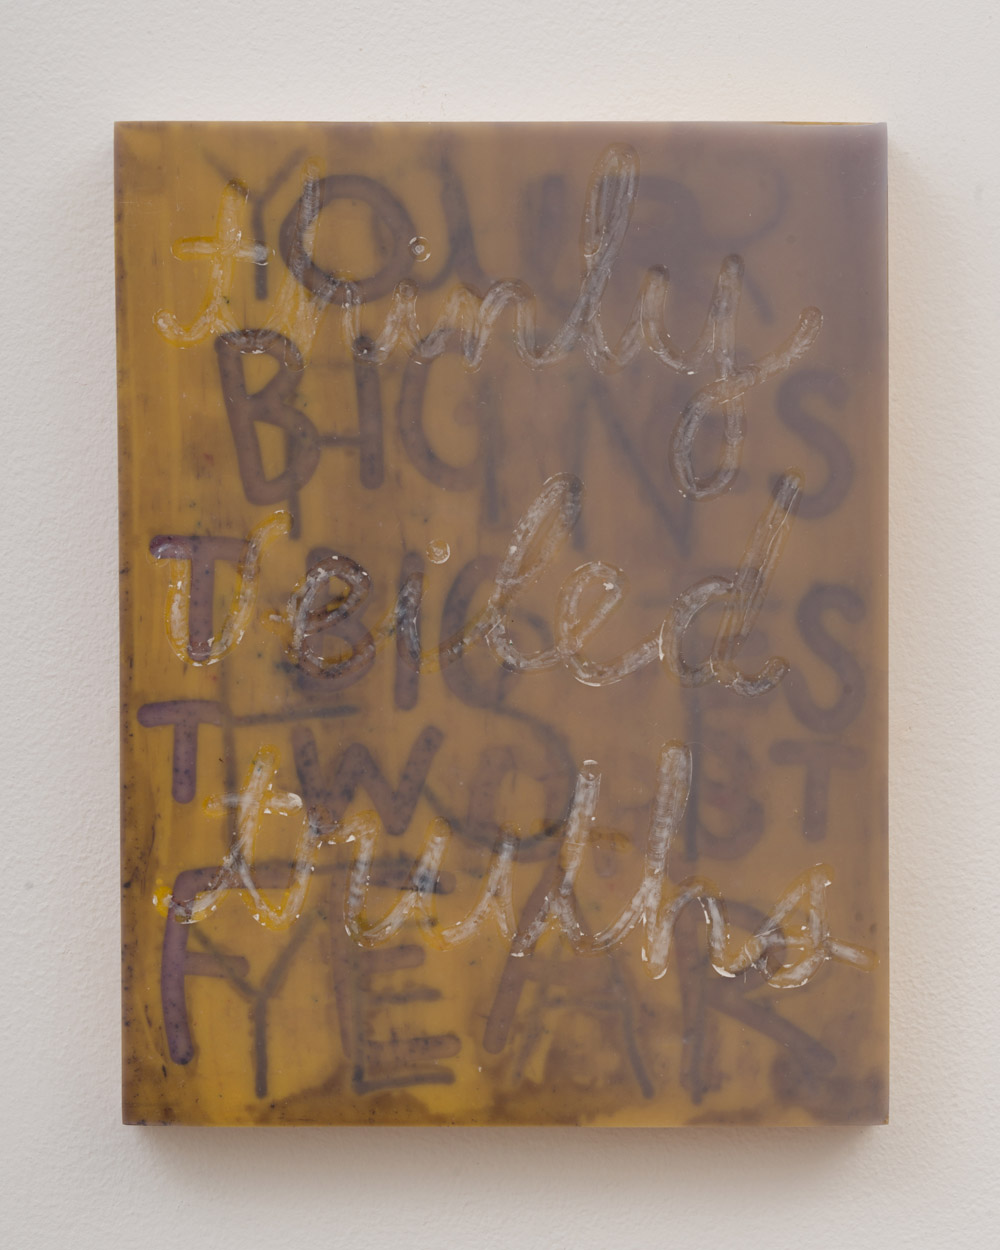 """<p><span class=""""name"""">Tommy Coleman</span><br><em>Thinly Vieled Truths</em><span class='media'>UV resistant epoxy resin, food coloring, crayon, and pigment on panel</span>11 x 8.5 in (27.9 x 21.6 cm)<br>2018<br><a class='inquire' href='mailto:info@gildargallery.com?subject=Artwork Inquiry TCOL0014&body=I am interested in finding out more about Thinly Vieled Truths by Tommy Coleman'>Inquire</a></p>"""